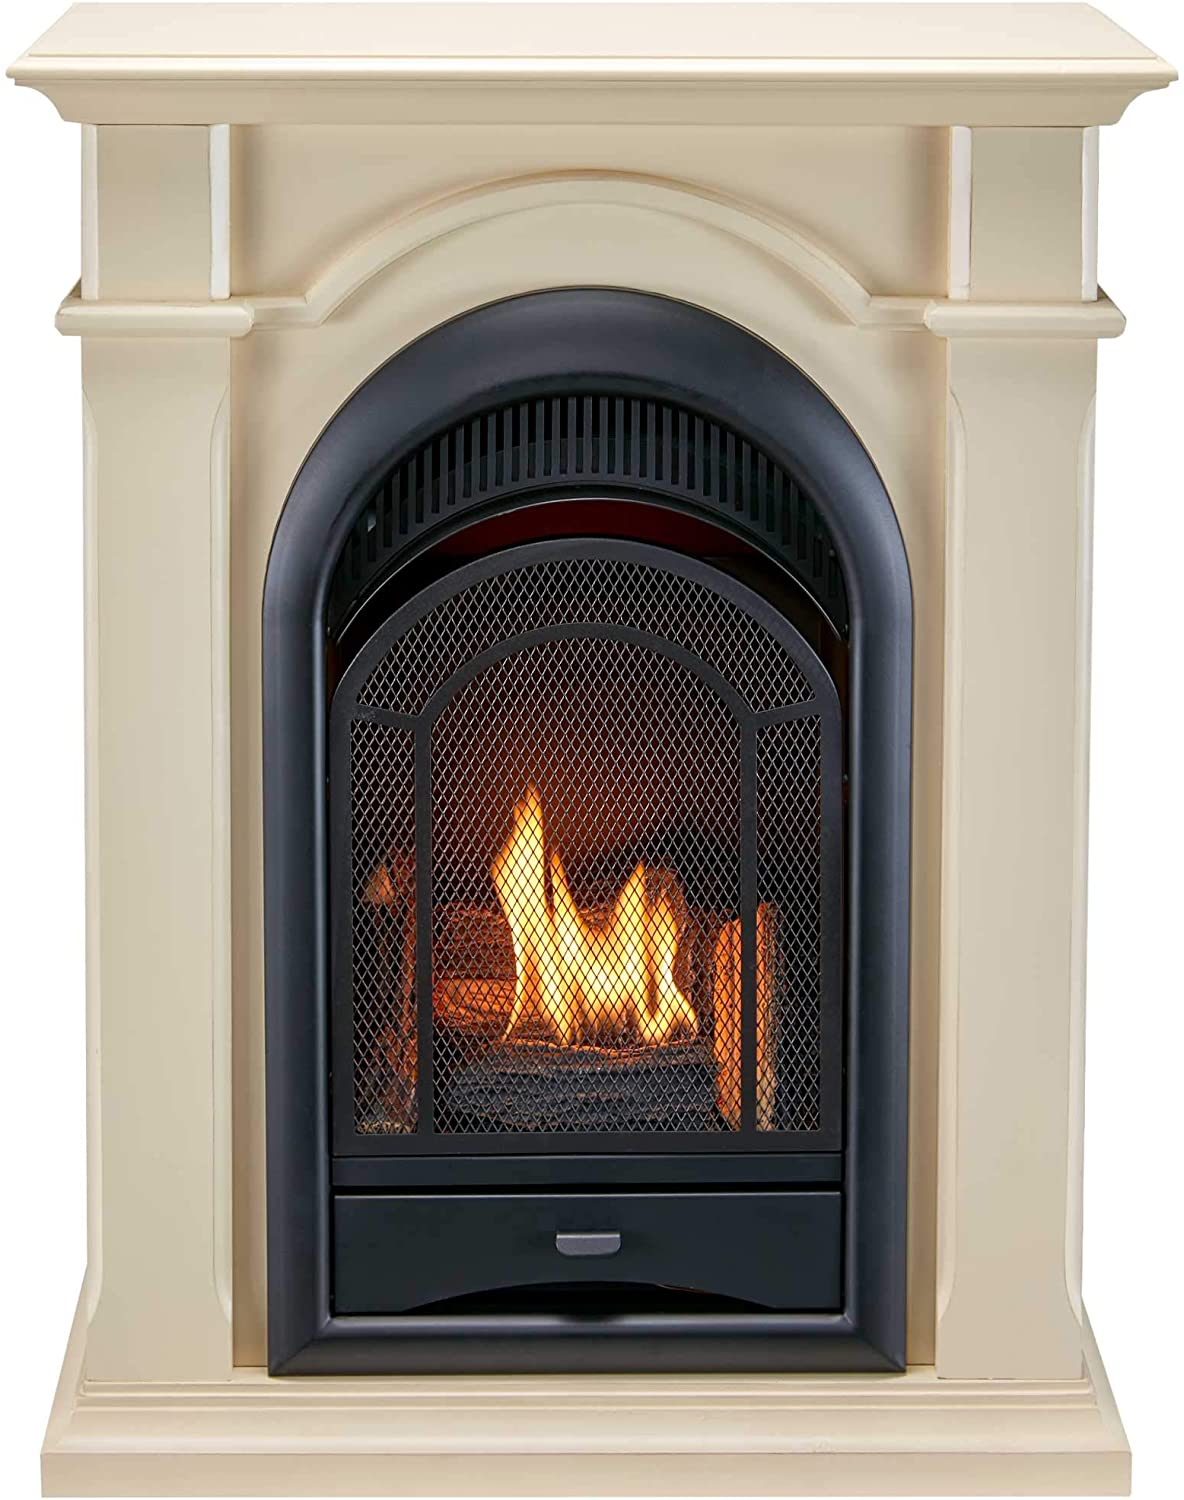 Dual Fuel Fireplace Awesome Amazon Pro Heating Fs100t 1 Aw Fireplace White